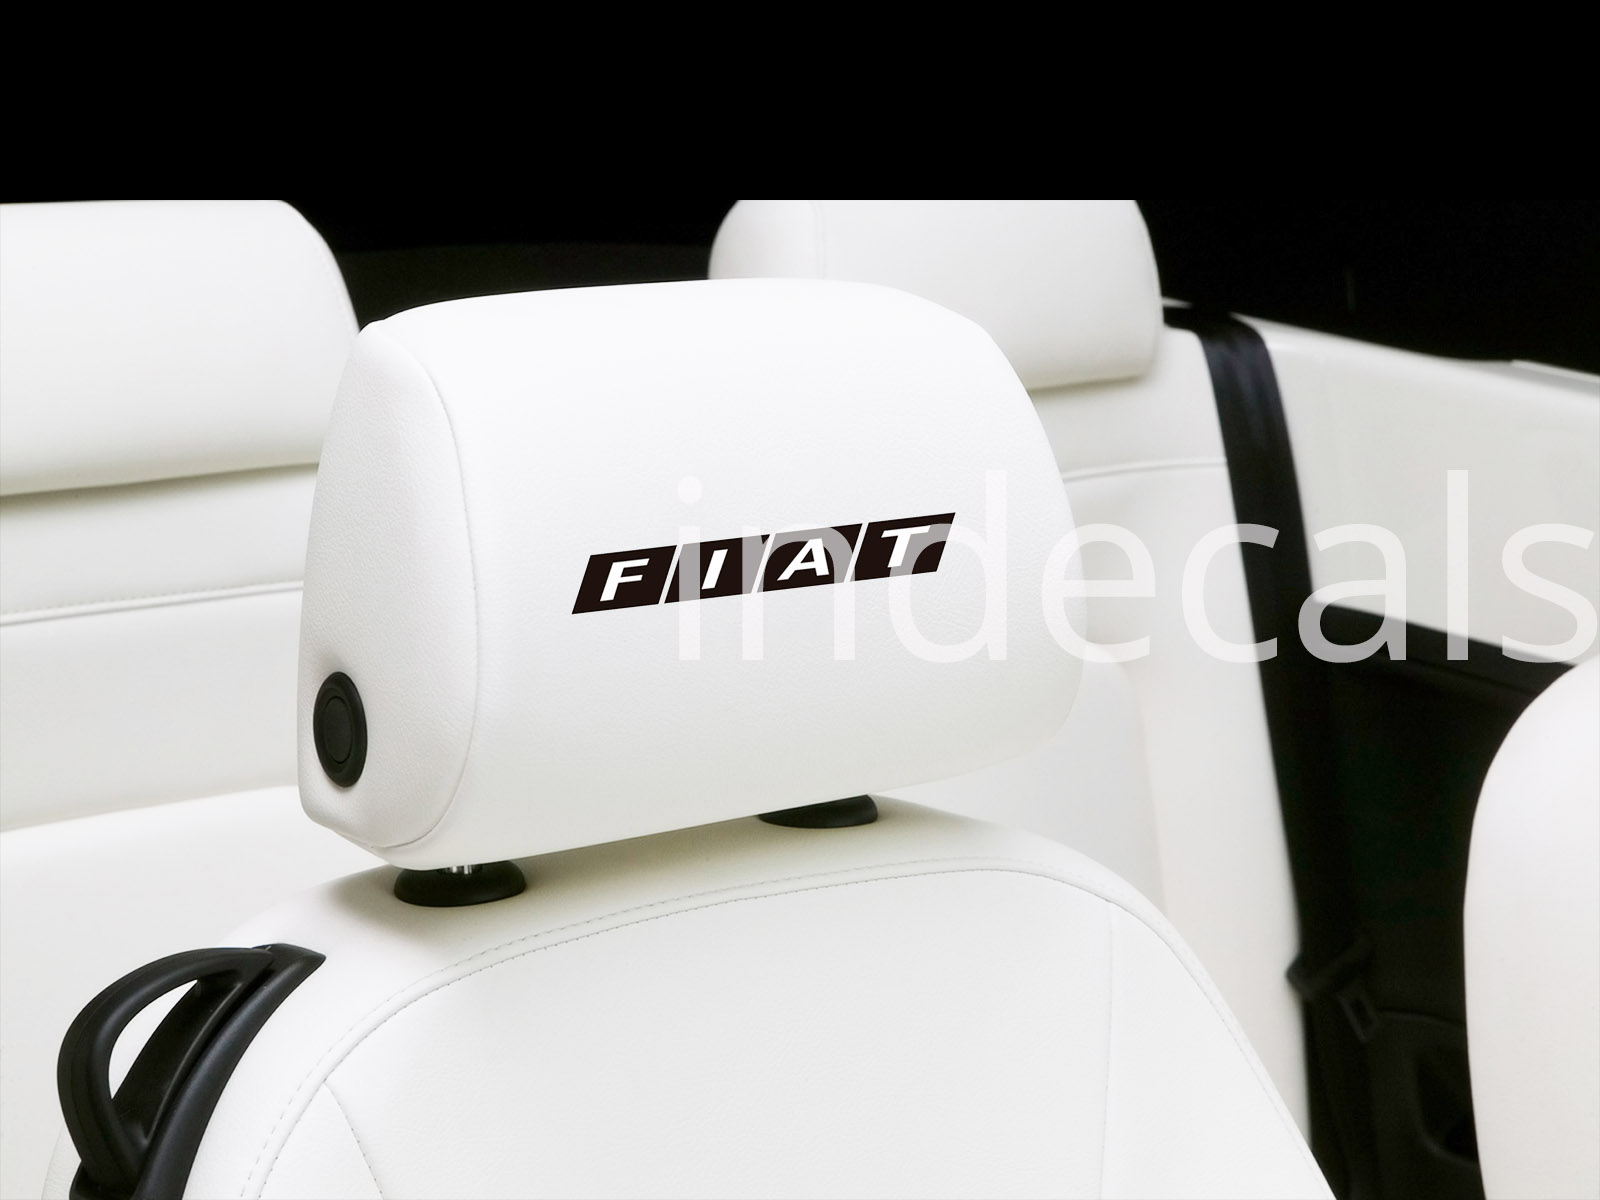 6 x Fiat Stickers for Headrests - Black